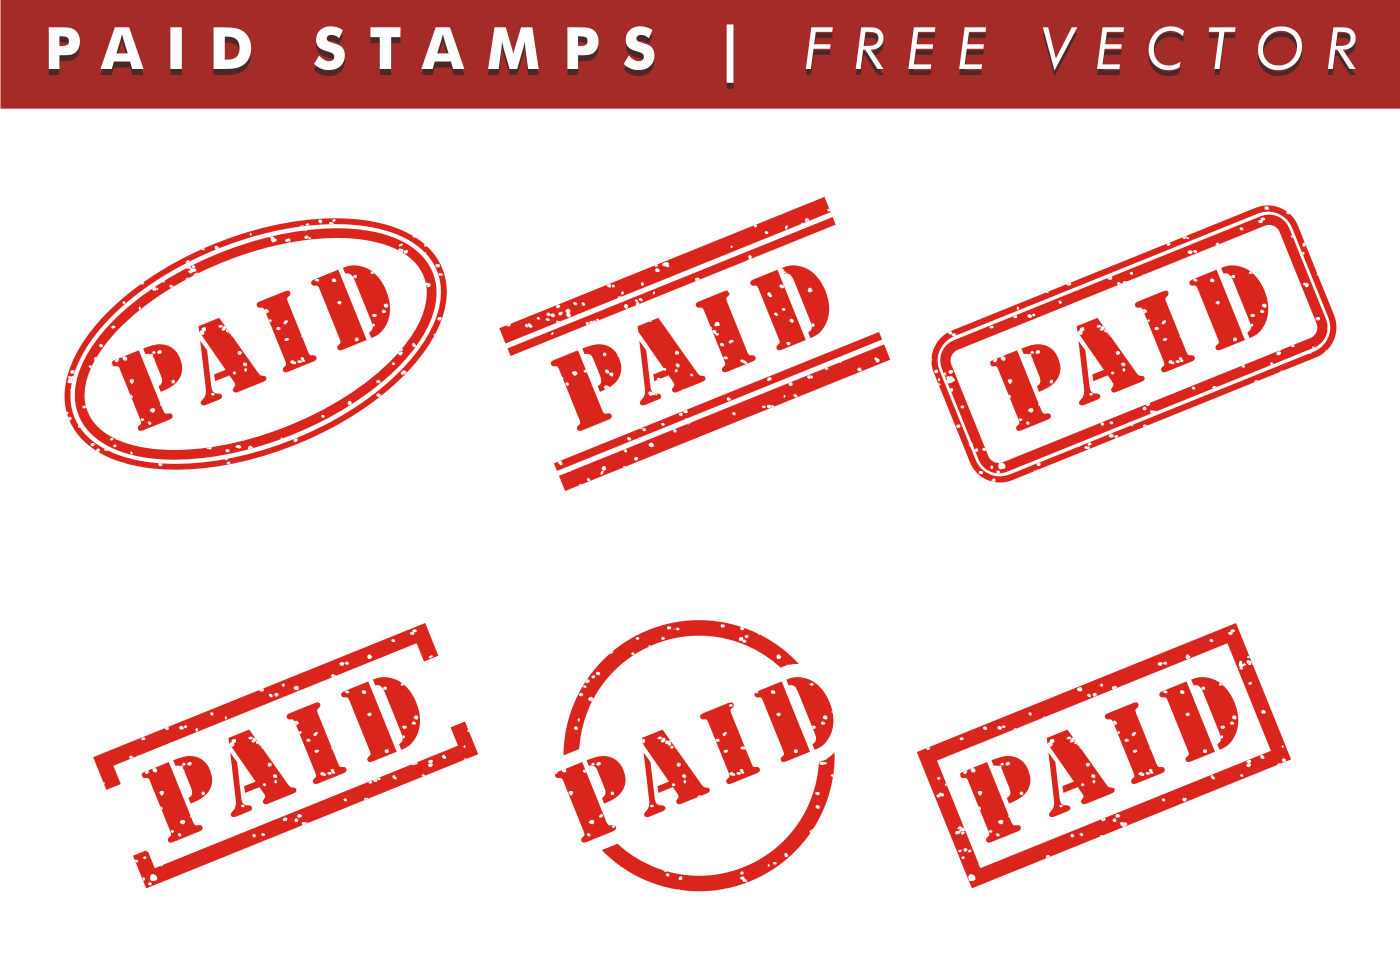 94568 Paid Stamps Free Vector on Shapes Rubber Stamp